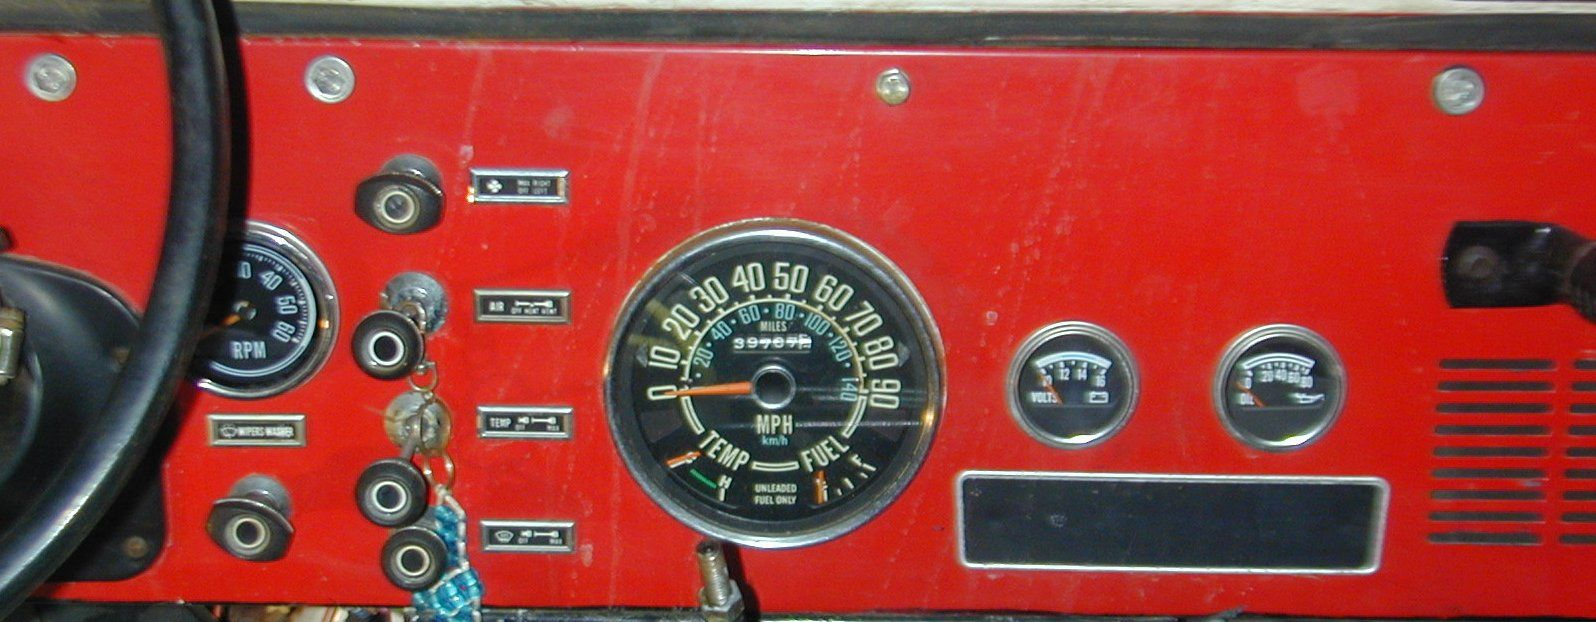 medium resolution of basic troubleshooting for cj gauges jeep cj6 jeep truck jeep wrangler jeep willys